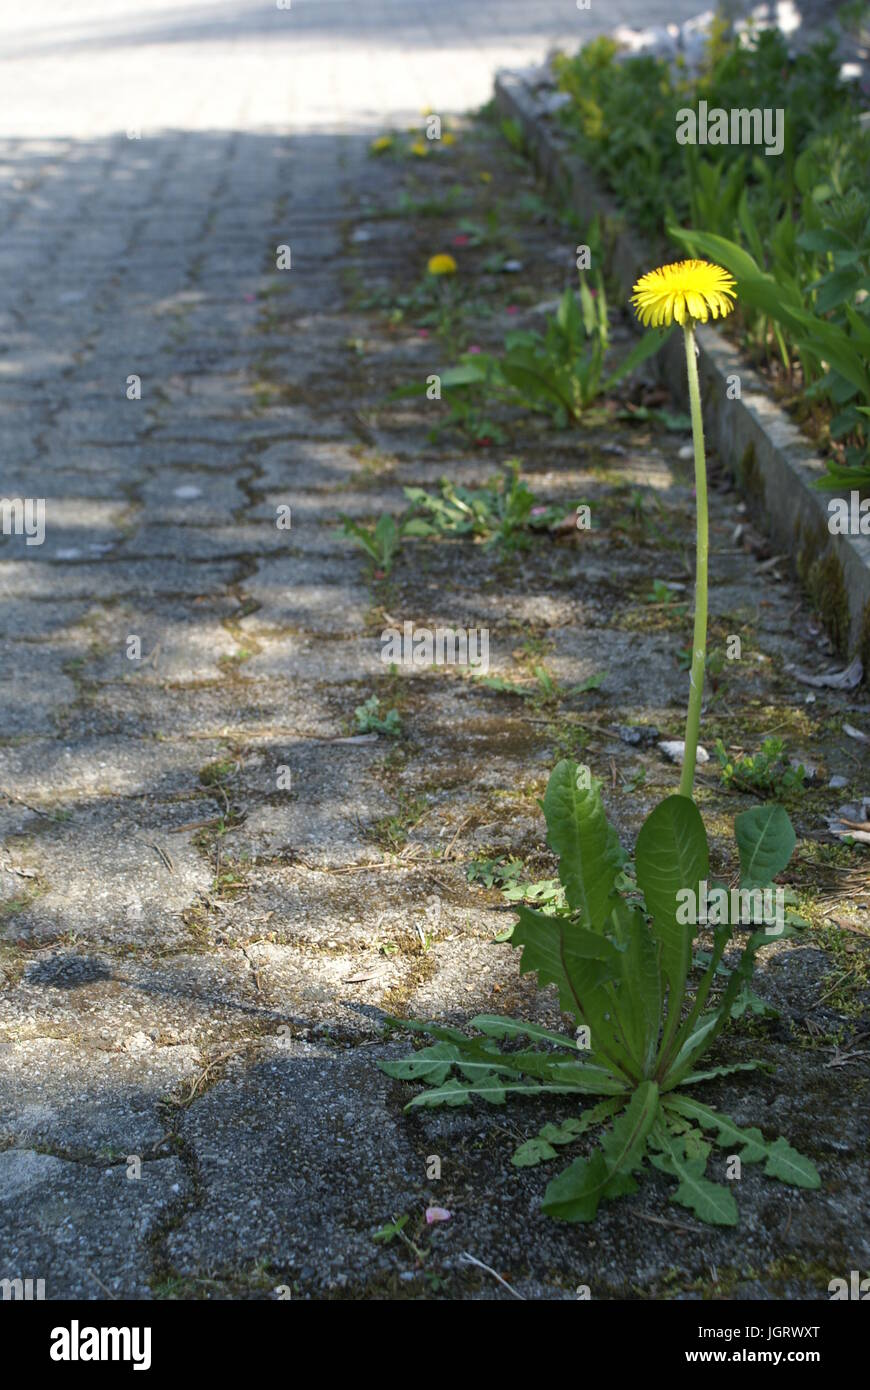 Dandelion growing between tiles in the street Stock Photo